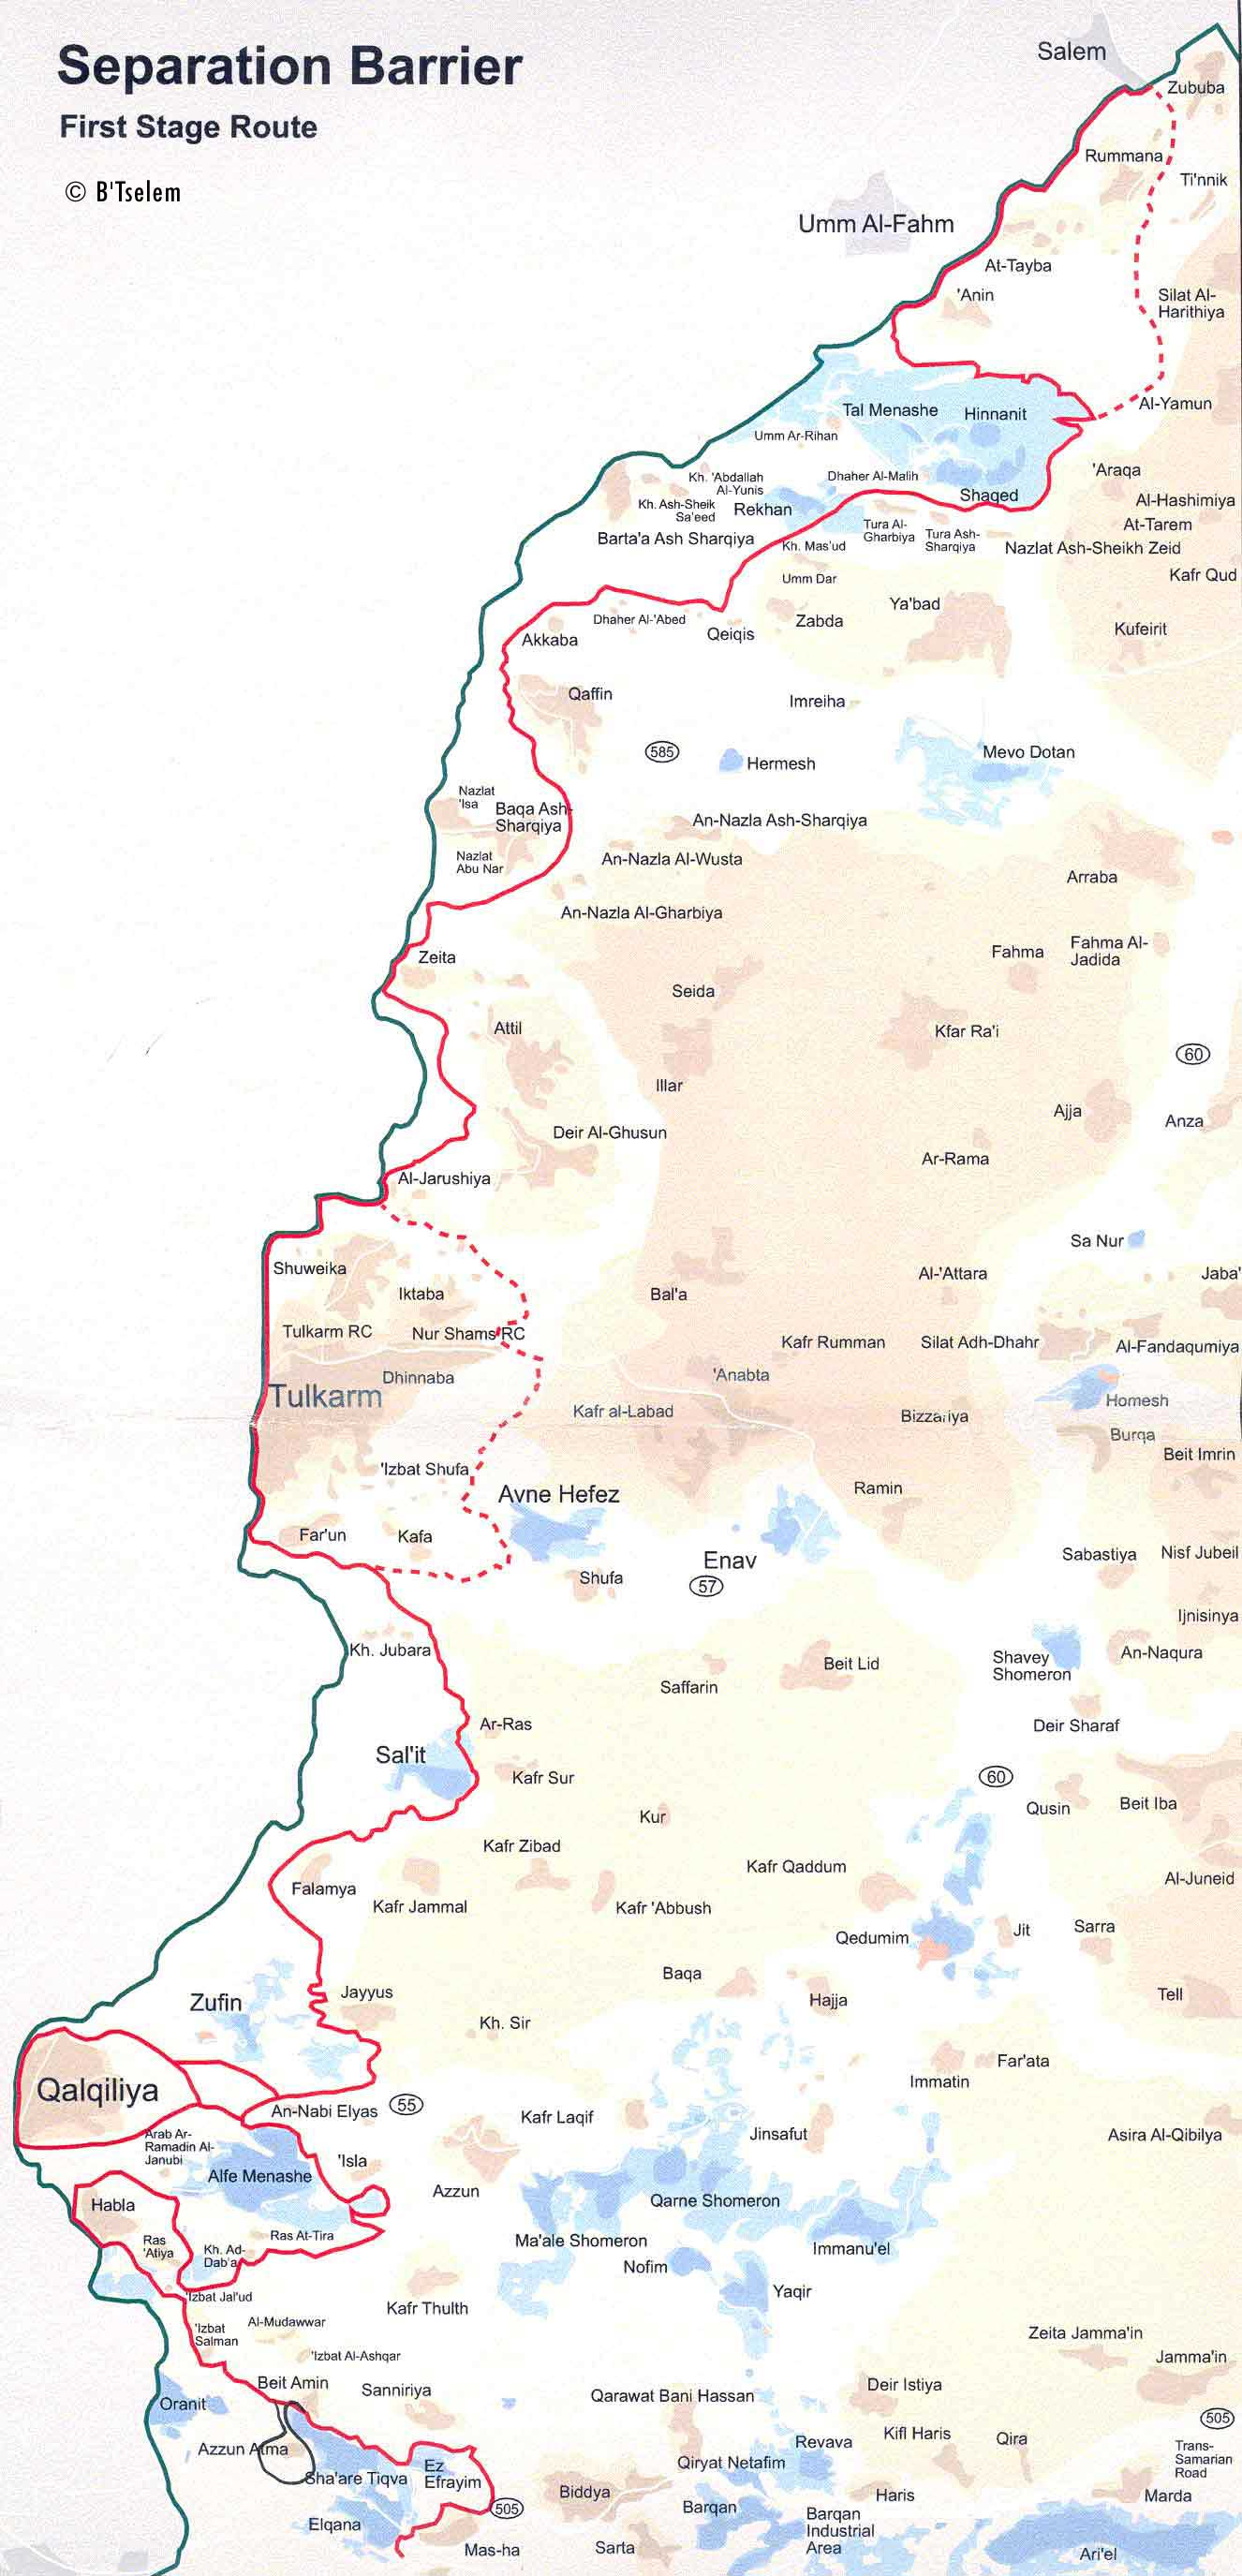 Separation Barrier Phase A Map